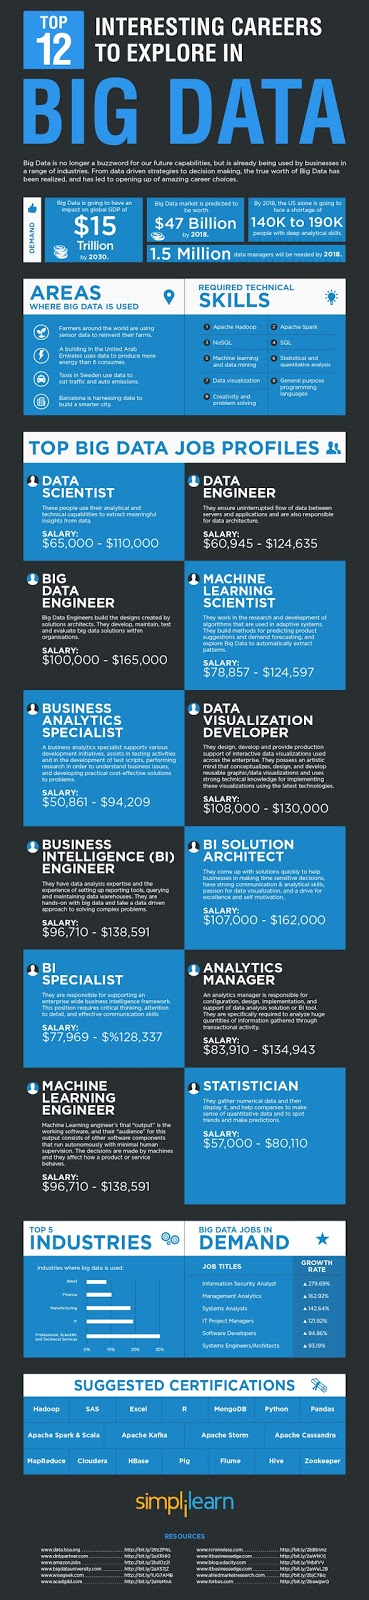 Big Data Vietnam Top 12 interesting careers to explore in Big Data